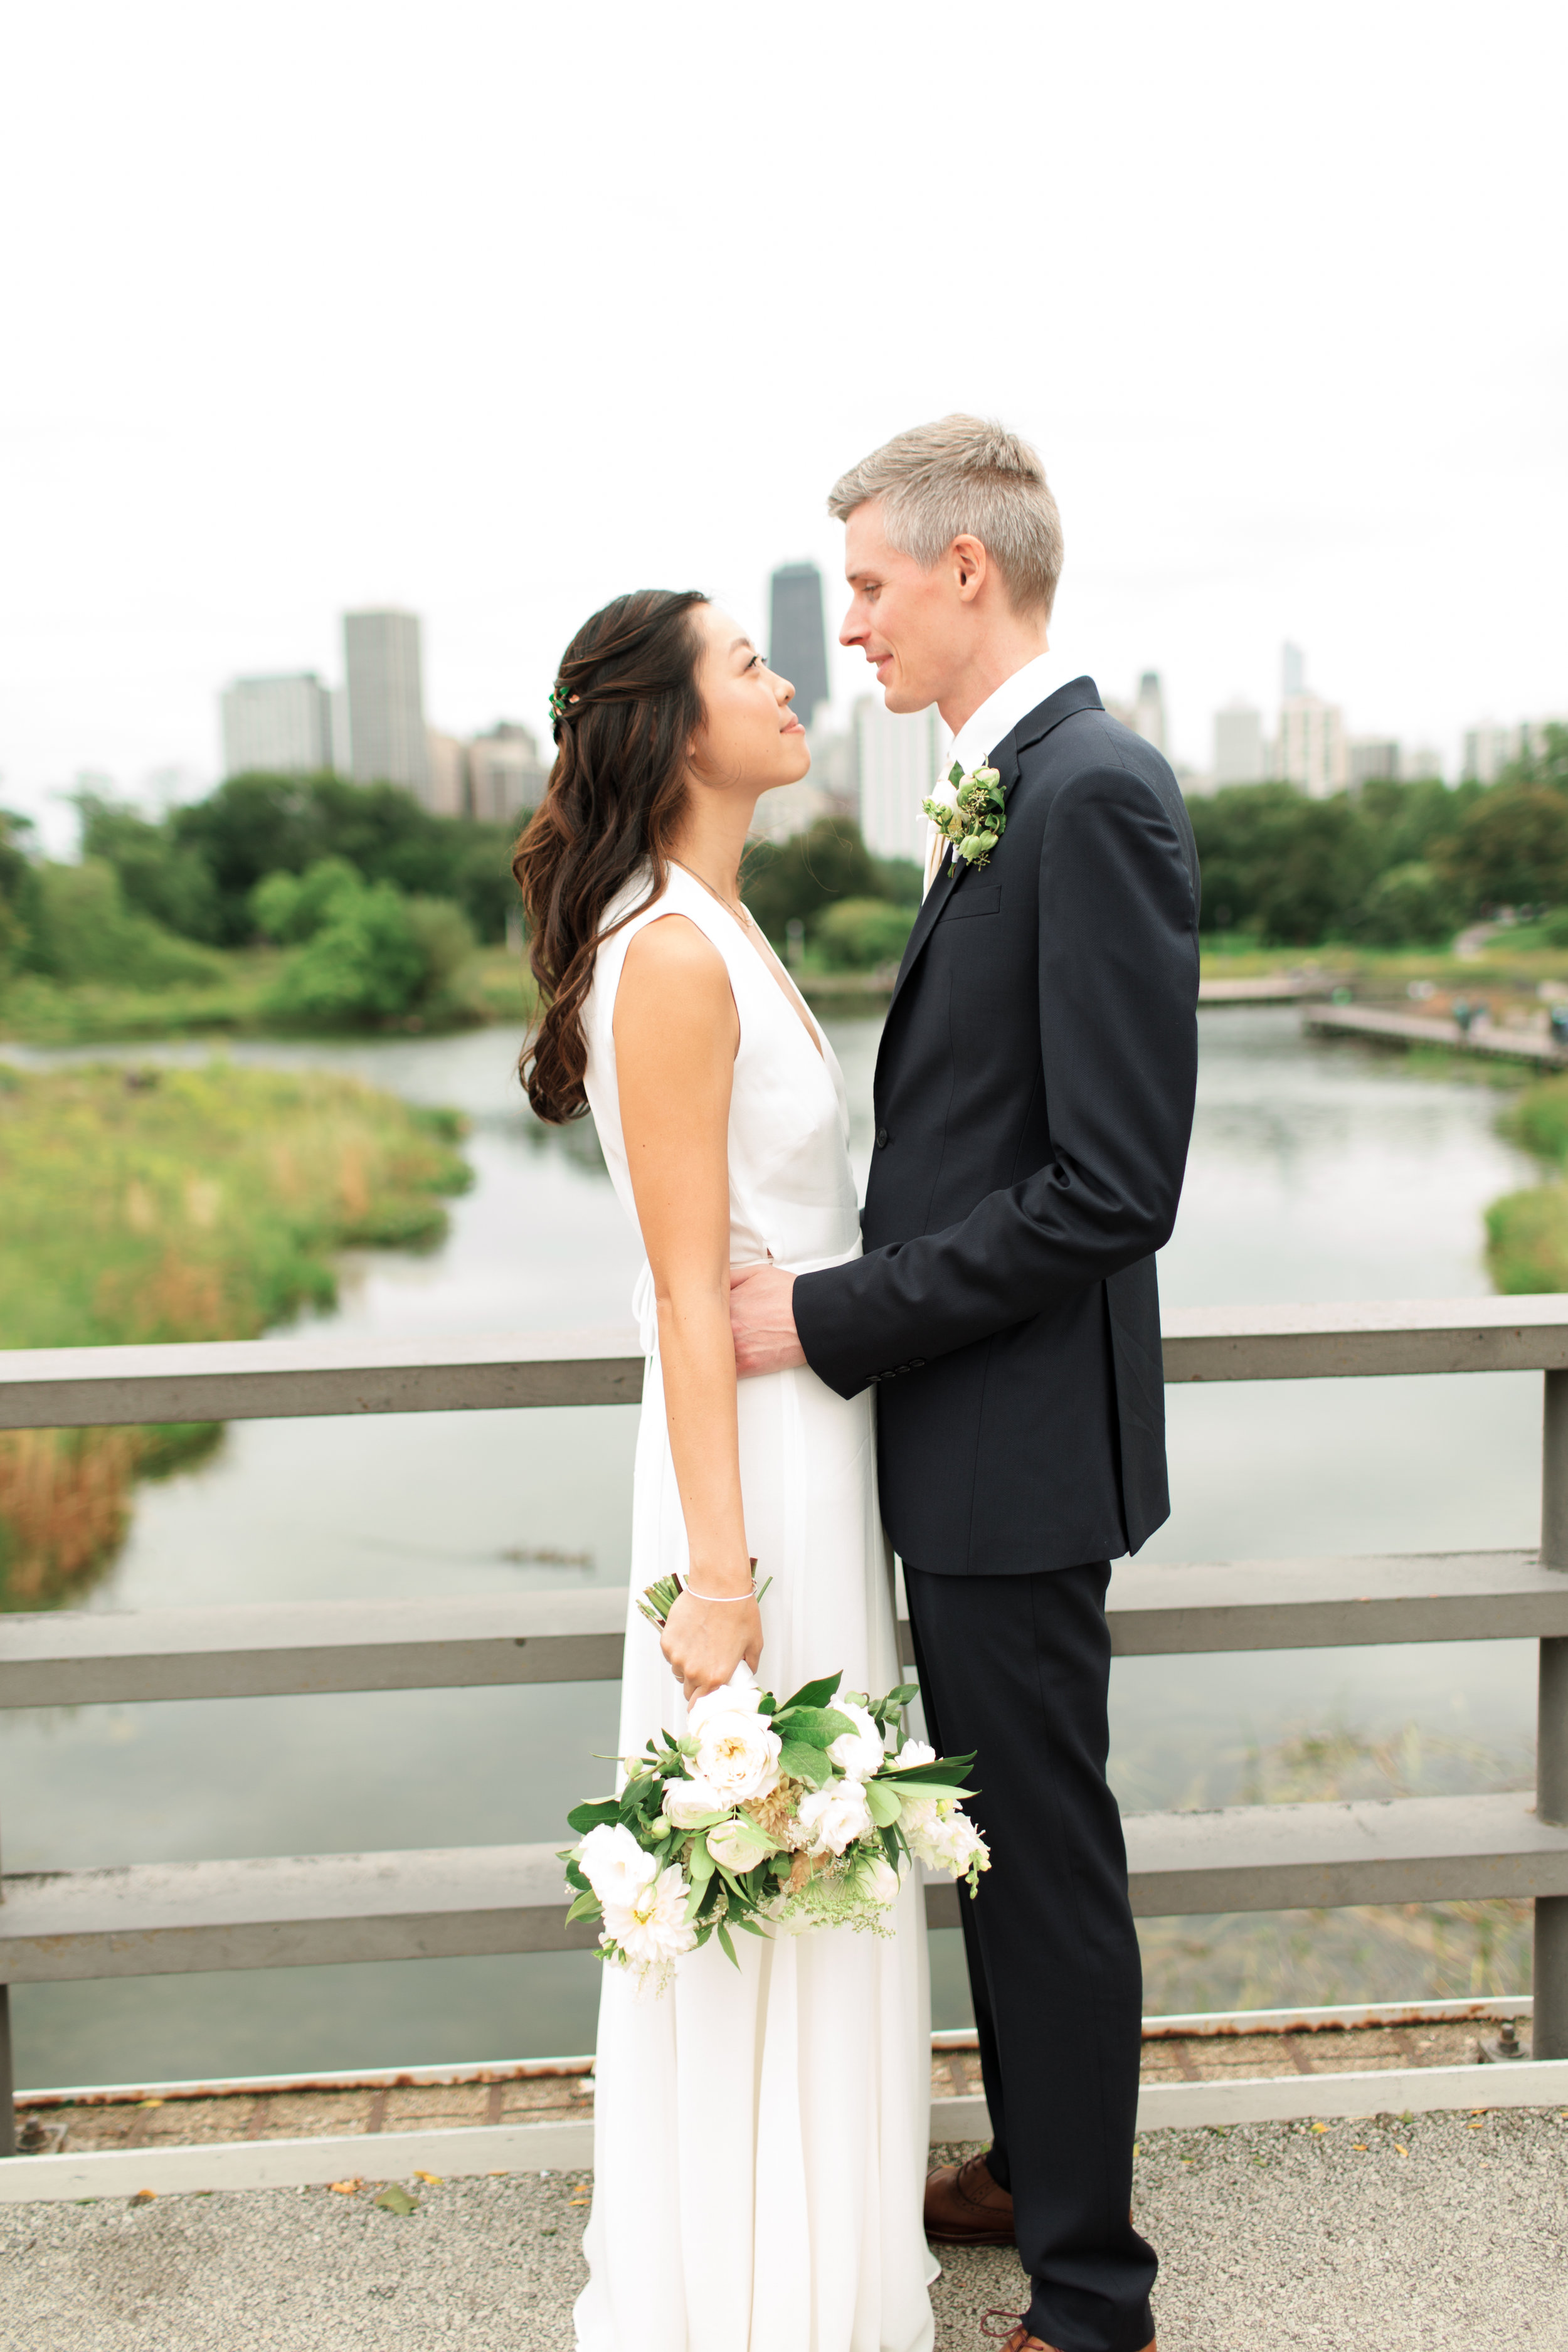 Intimate Chicago rooftop wedding at Homestead on the Roof captured by Geneva Boyett Photography. See more wedding ideas at CHItheeWED.com!